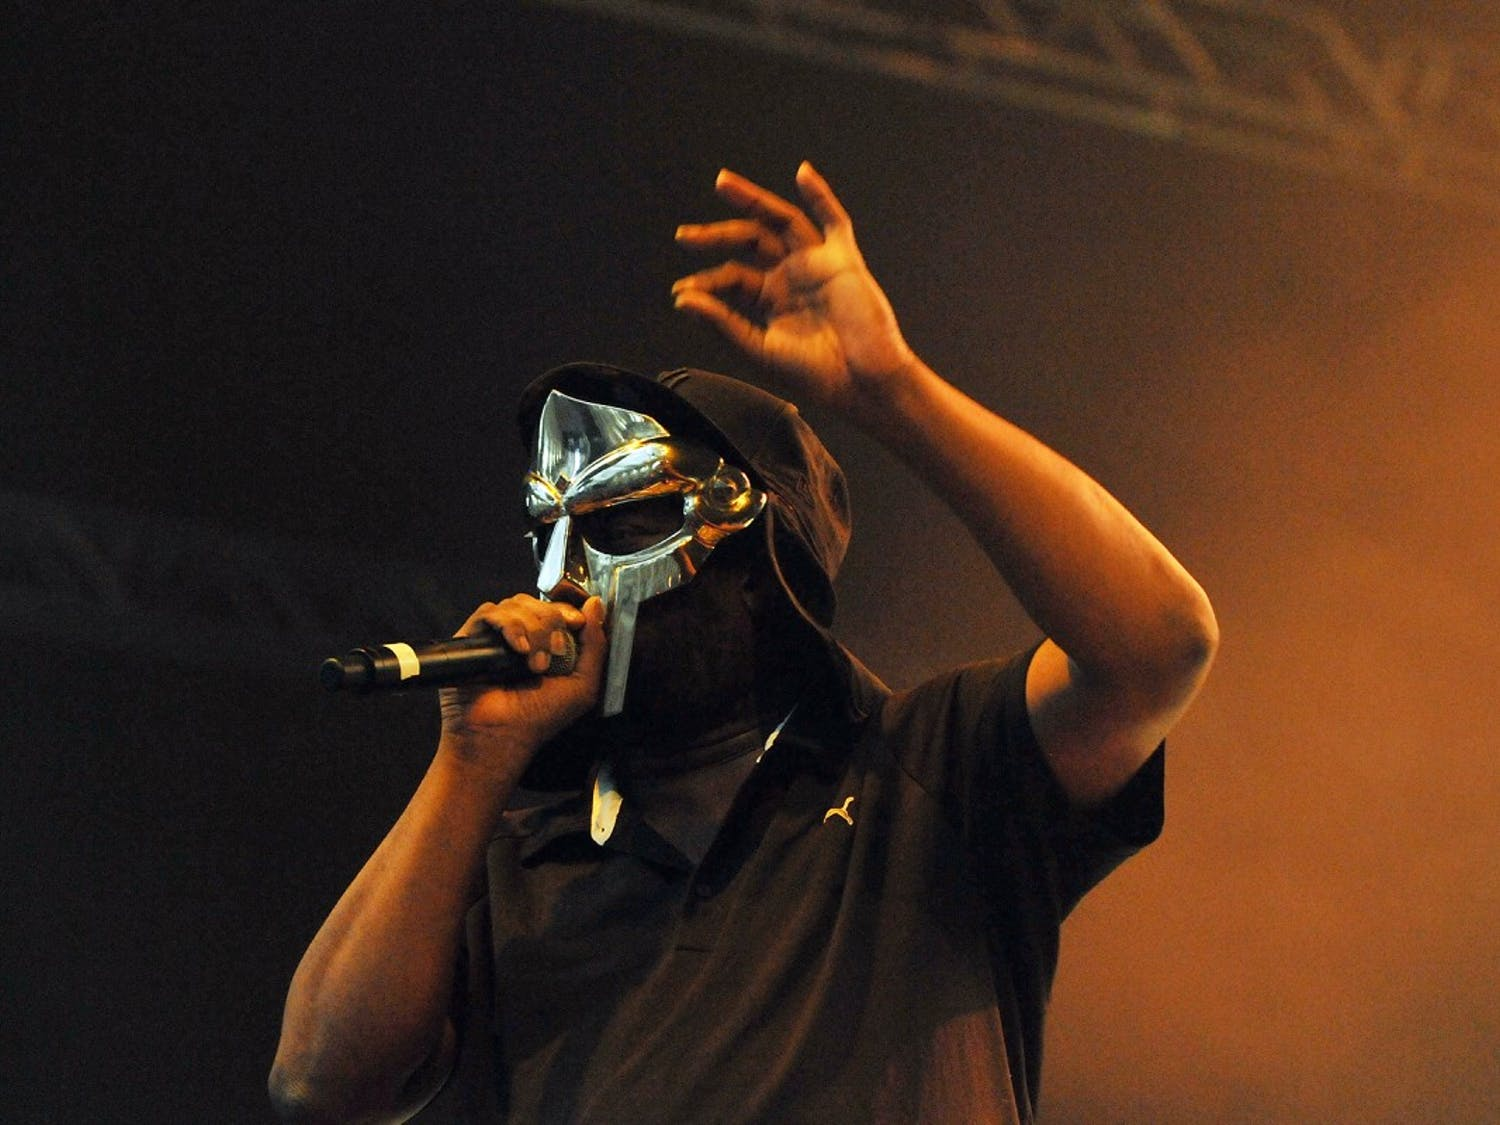 The late rapper, MF Doom, born Daniel Dumile, will always be remembered as a man whose impact is immeasurable.